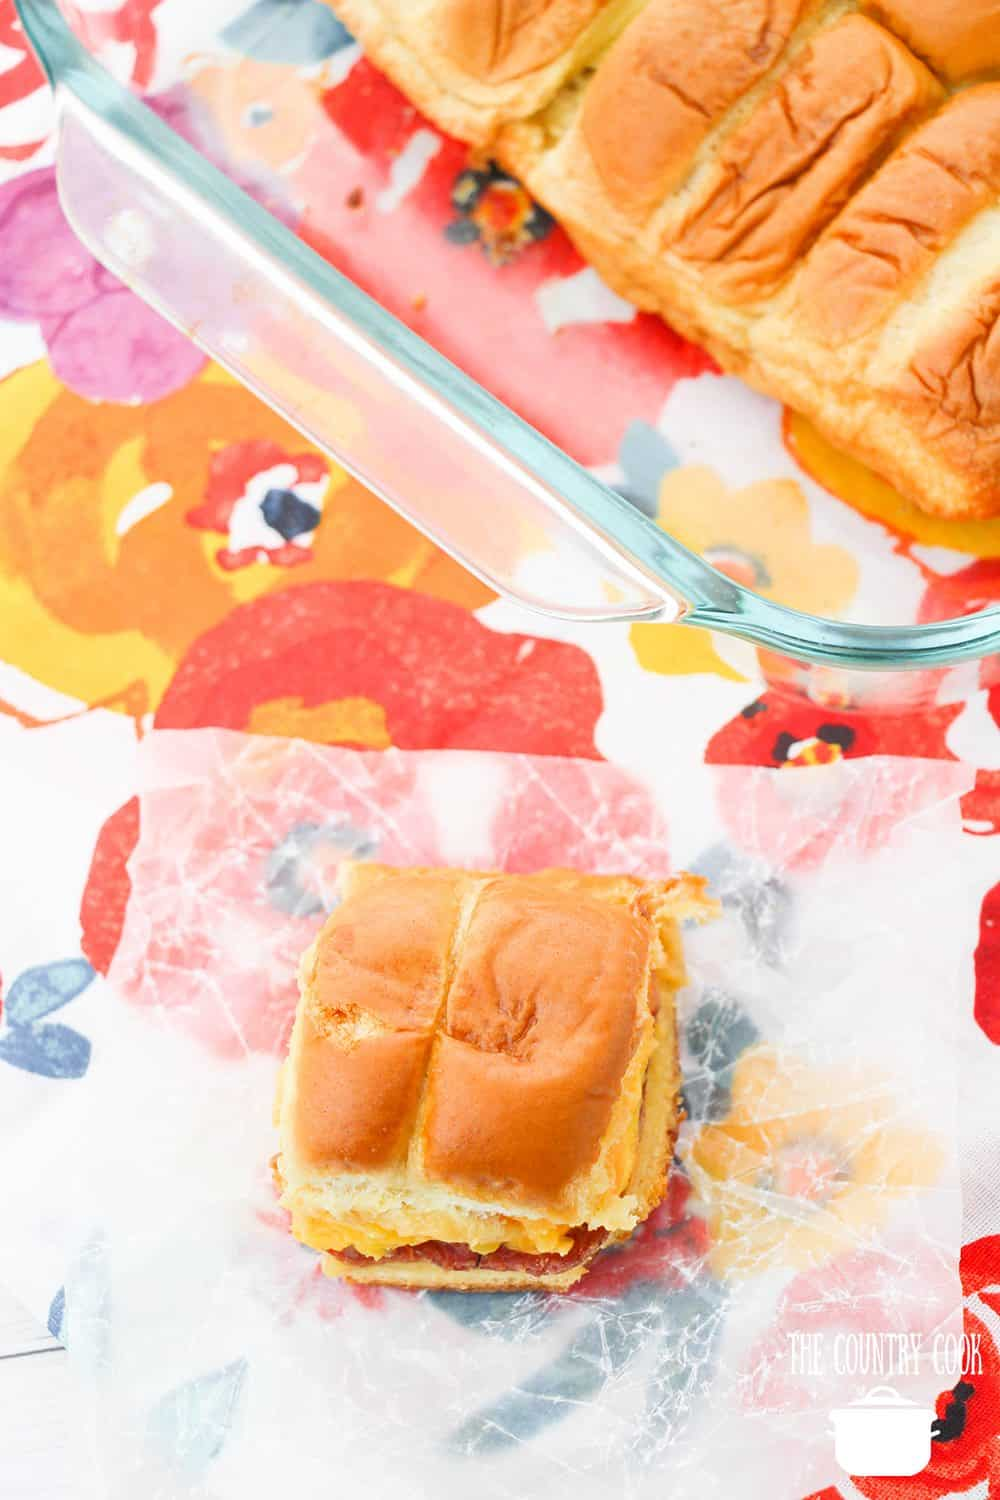 These breakfast sliders are a new breakfast favorite in our house! So savory, delicious, and easy to make. I guarantee you'll love these breakfast sliders and have your family begging you to make more!